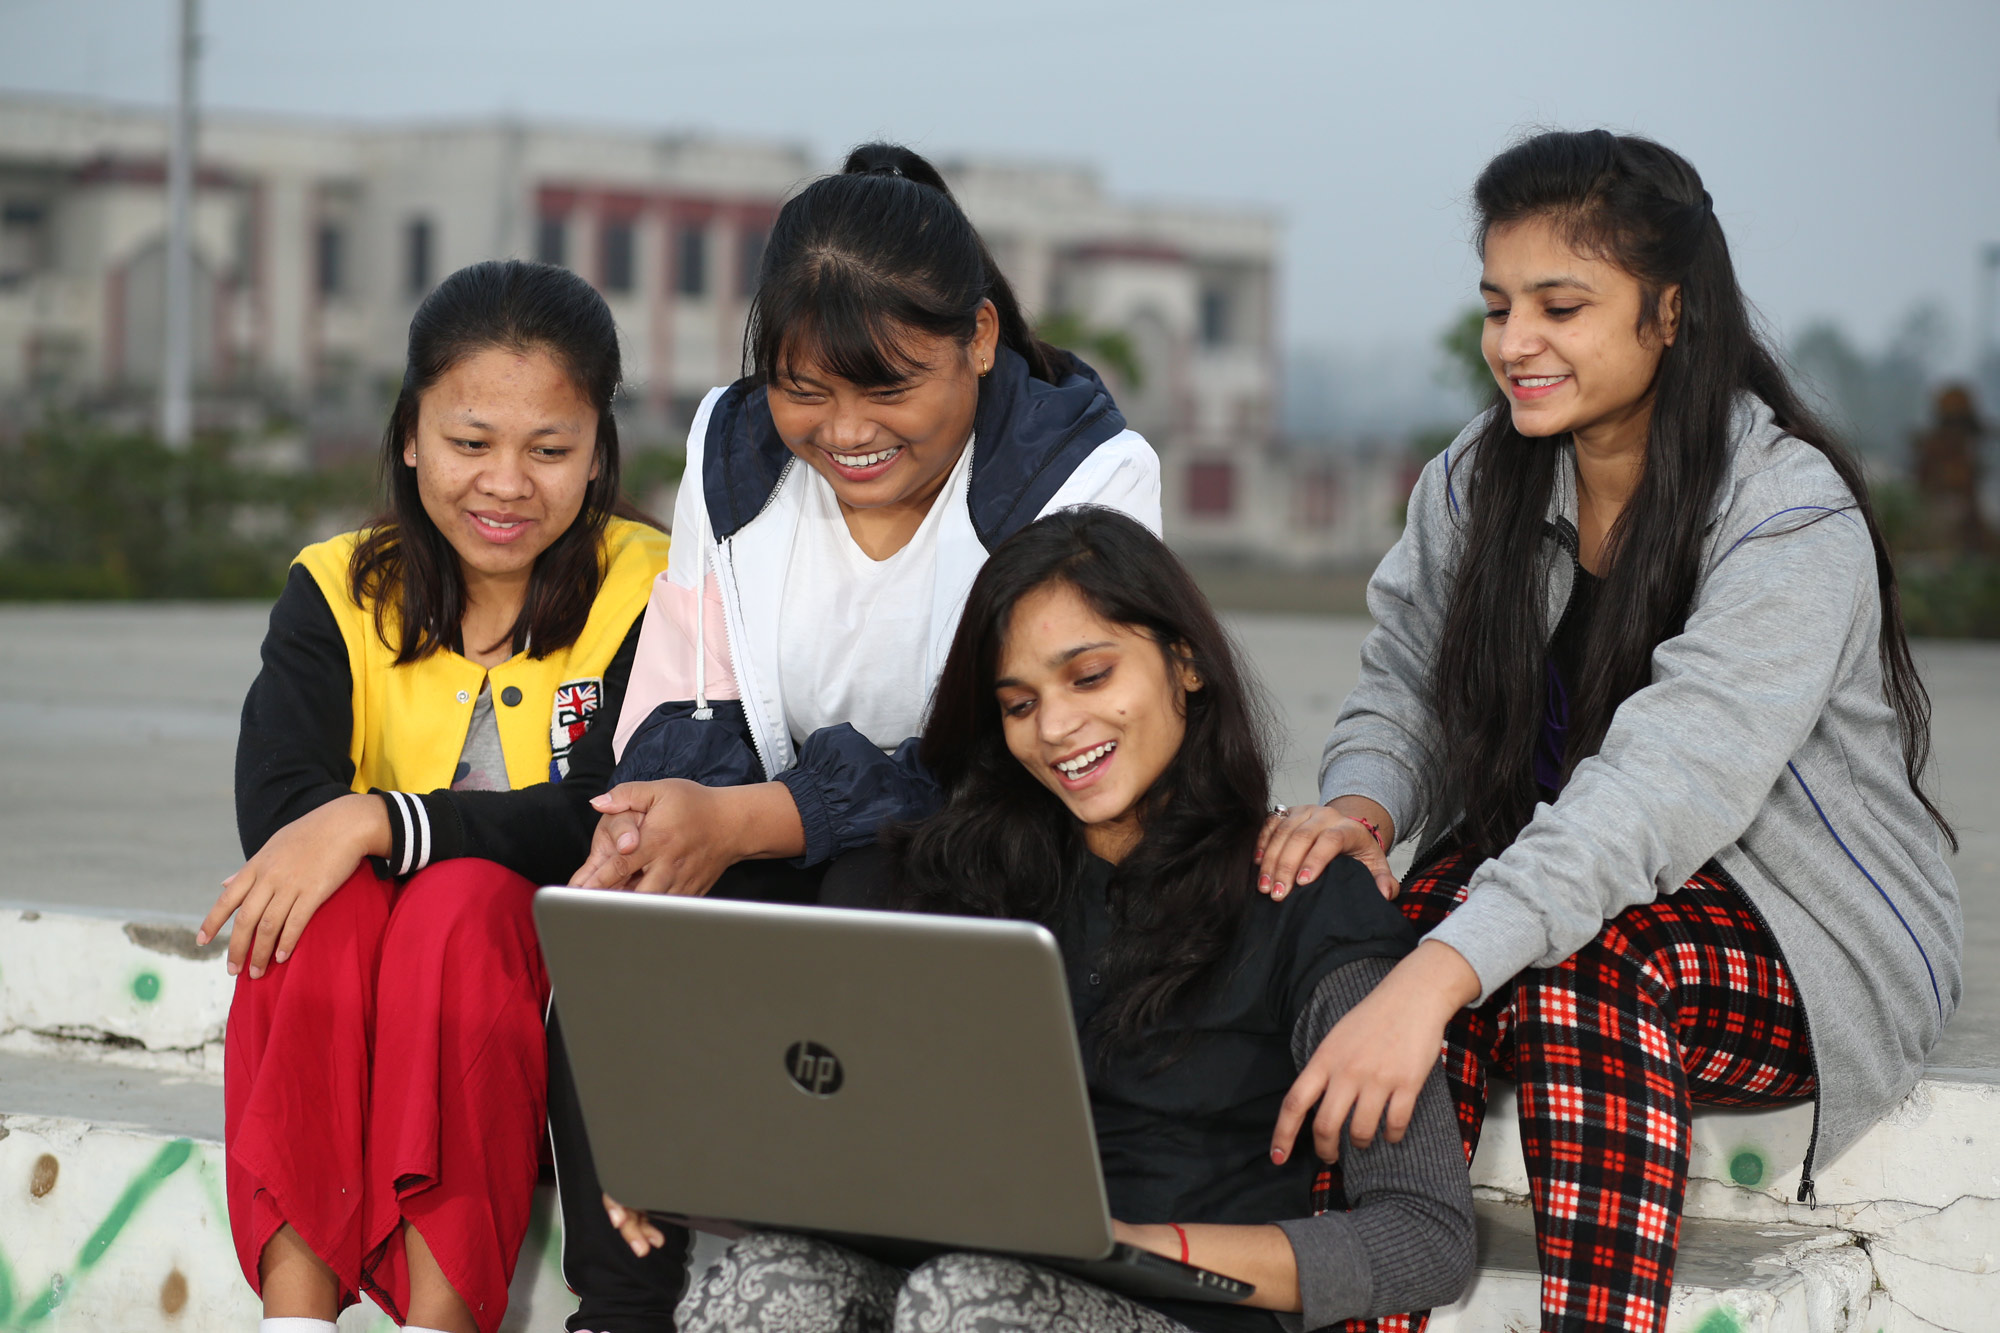 top private engineering college in uttarakhand, top 5 government engineering colleges in uttarakhand, top 10 engineering college in uttarakhand 2012, top ranking engineering college in uttarakhand